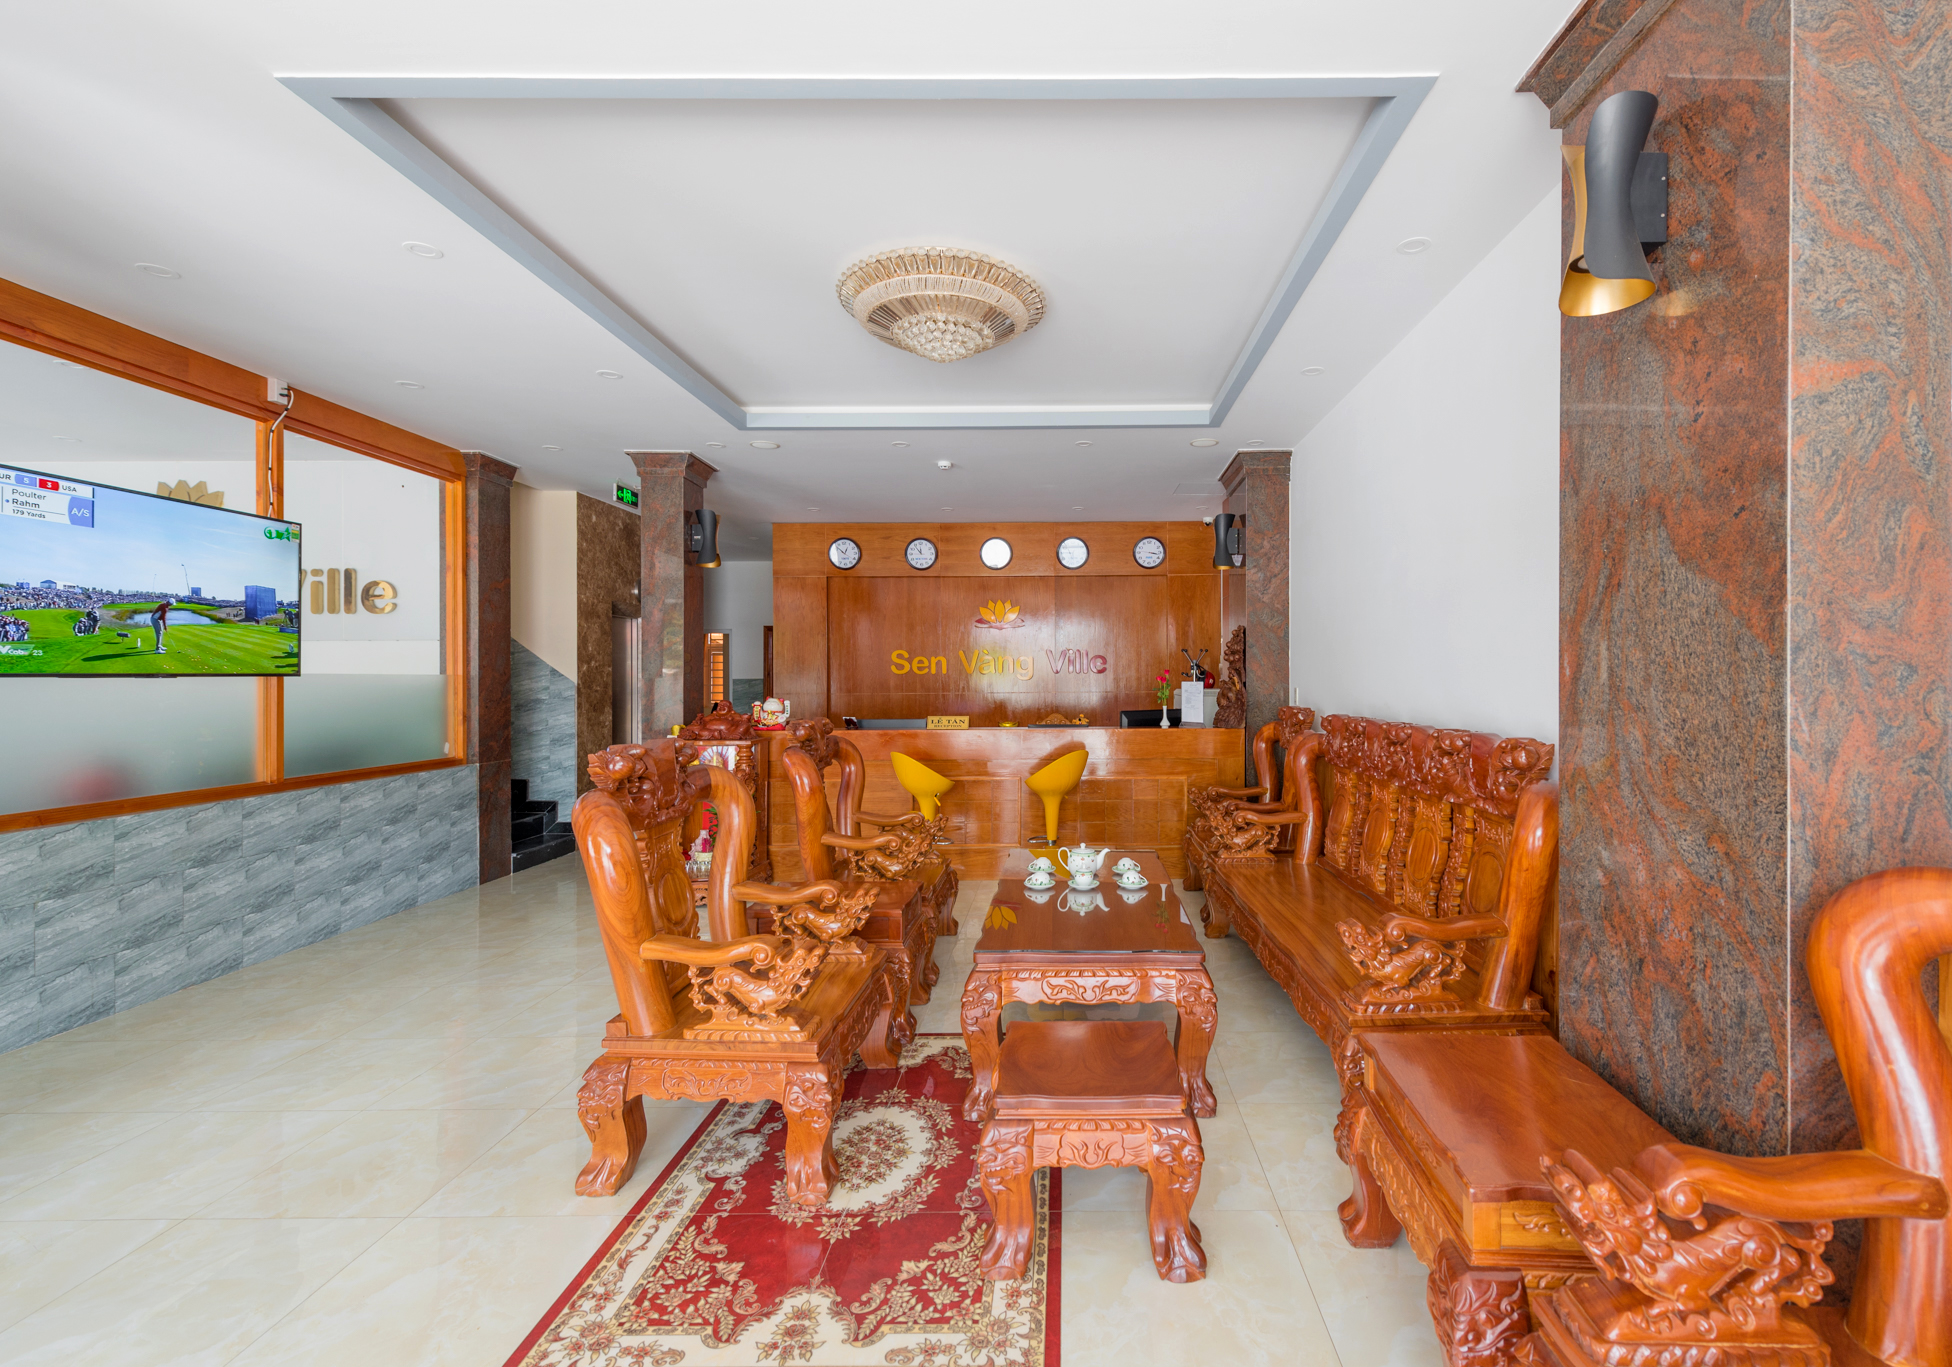 https://phuquoctrip.com/files/hotel/Sen Vang/Sảnh Lễ Tân (1).jpg